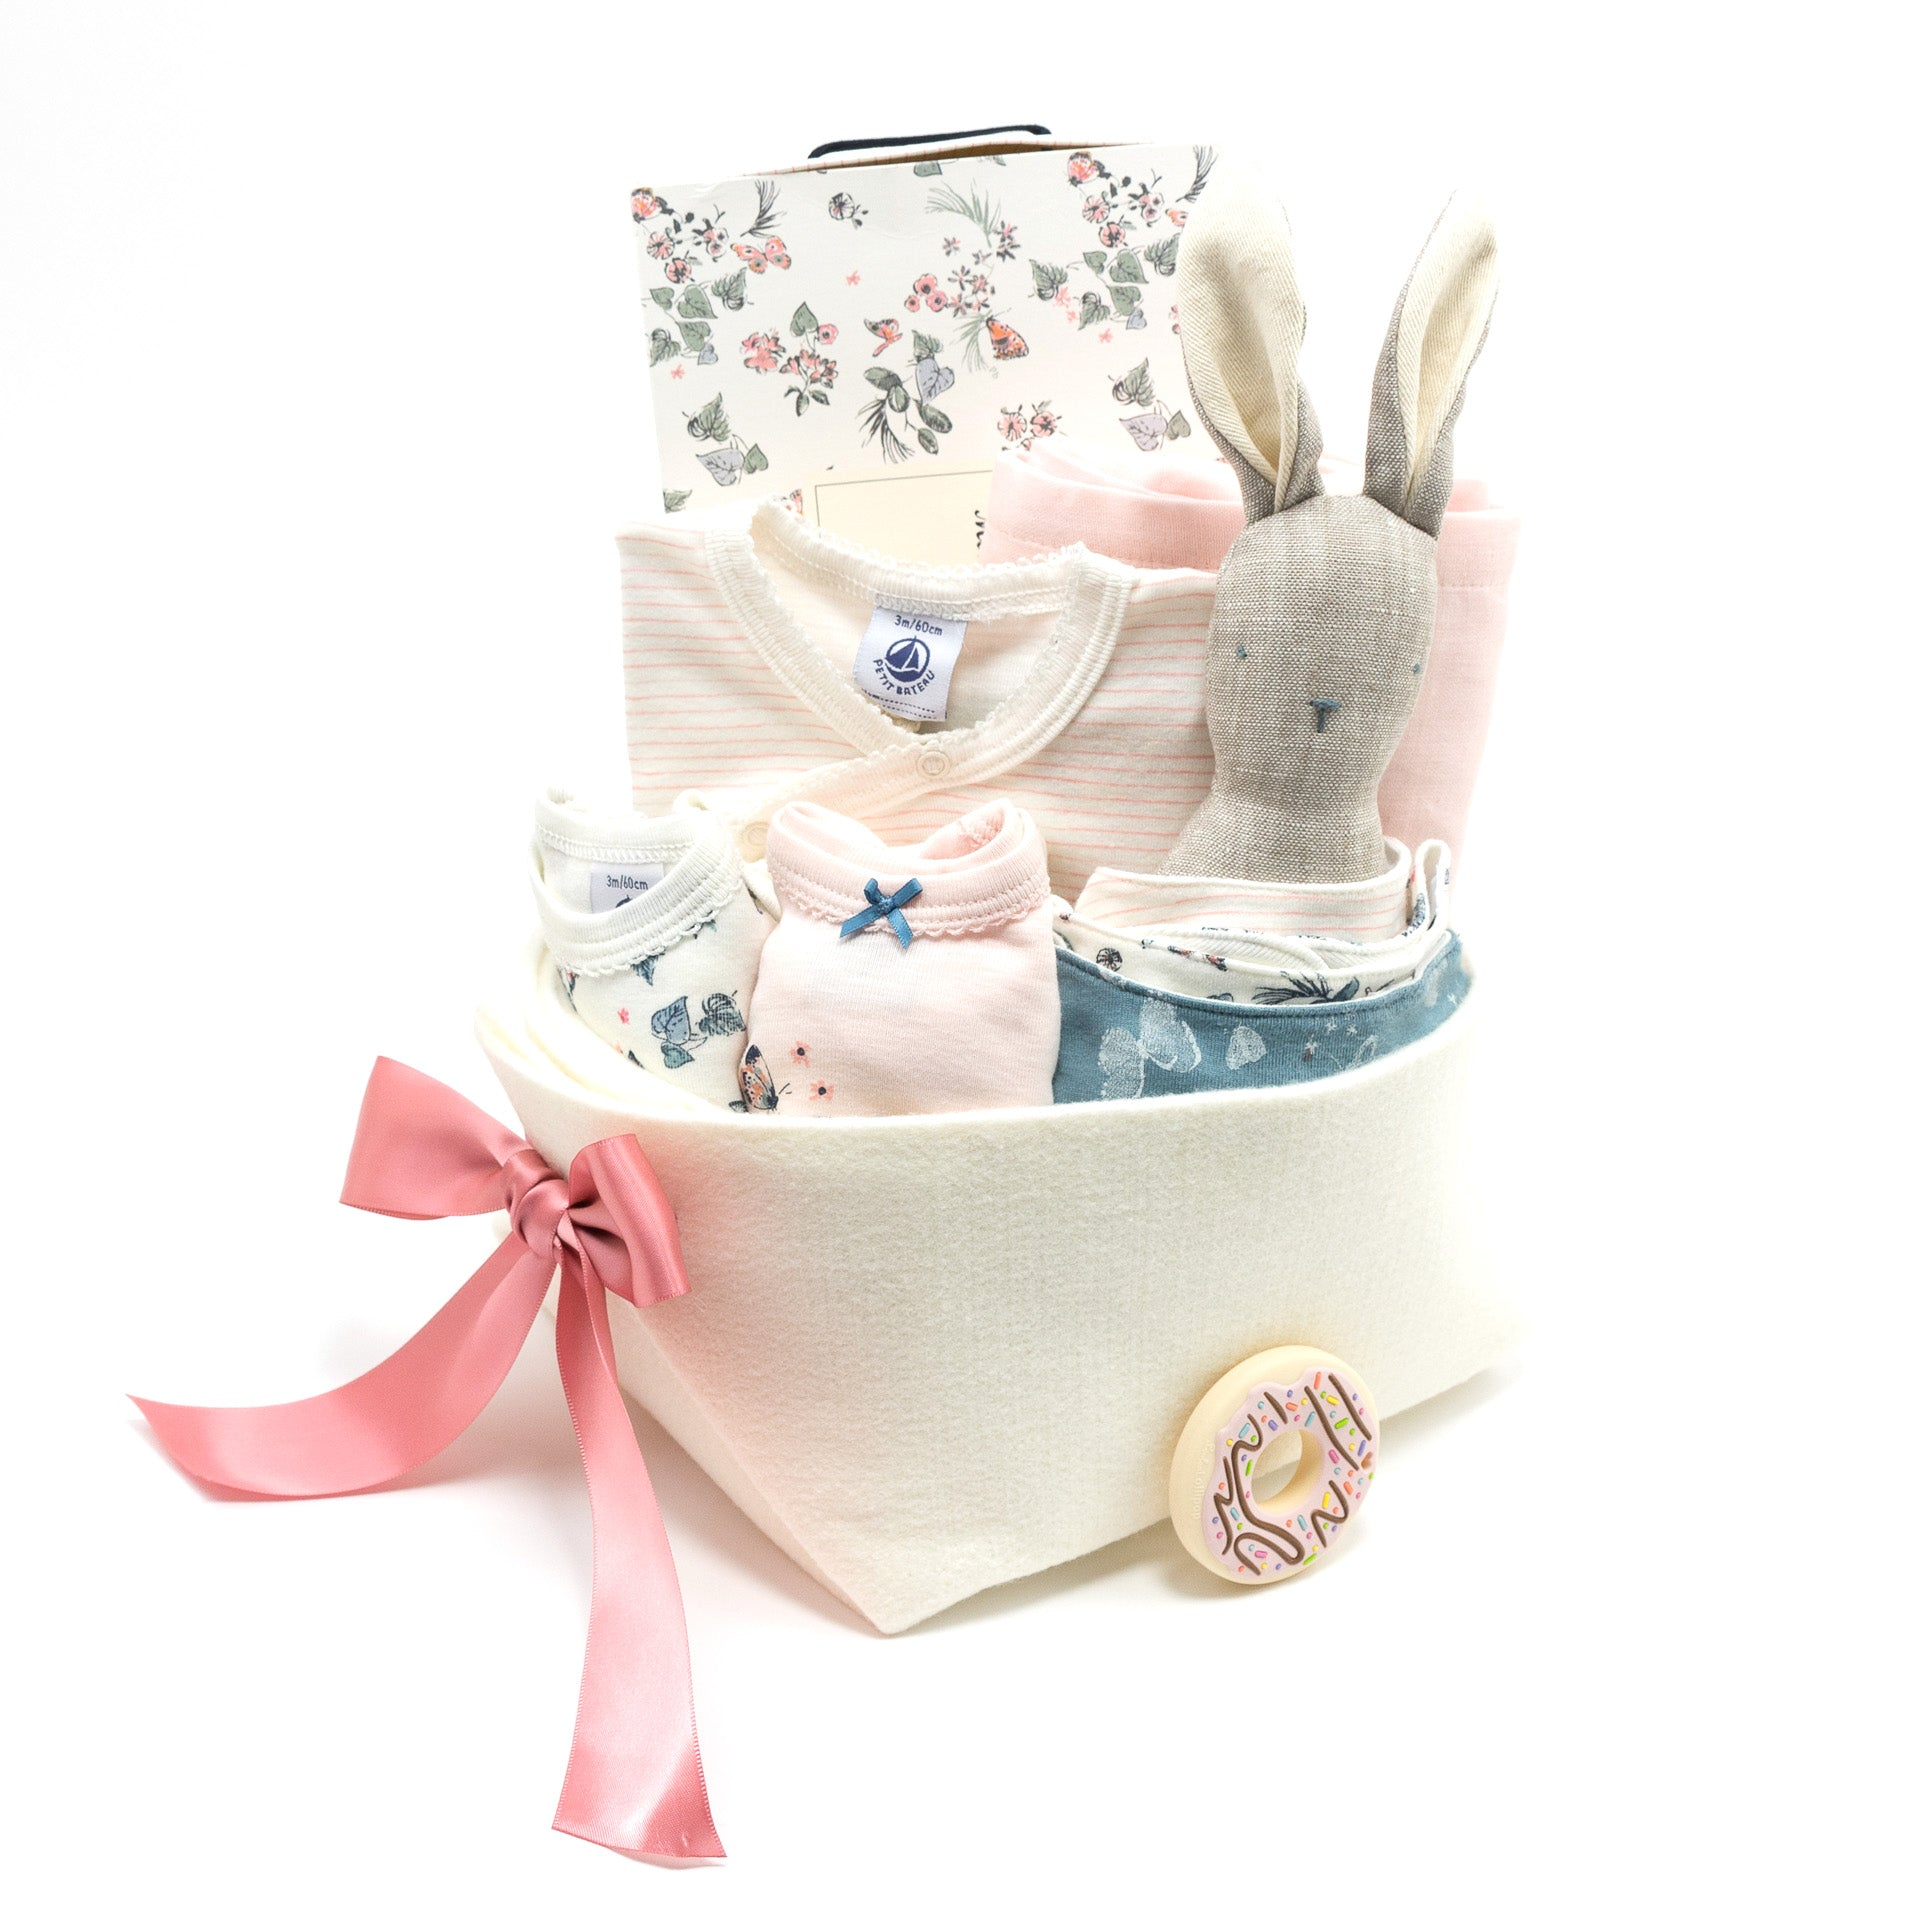 Petit Bateau Luxury Baby Gift Gift Basket, perfect for all your corporate baby gifts